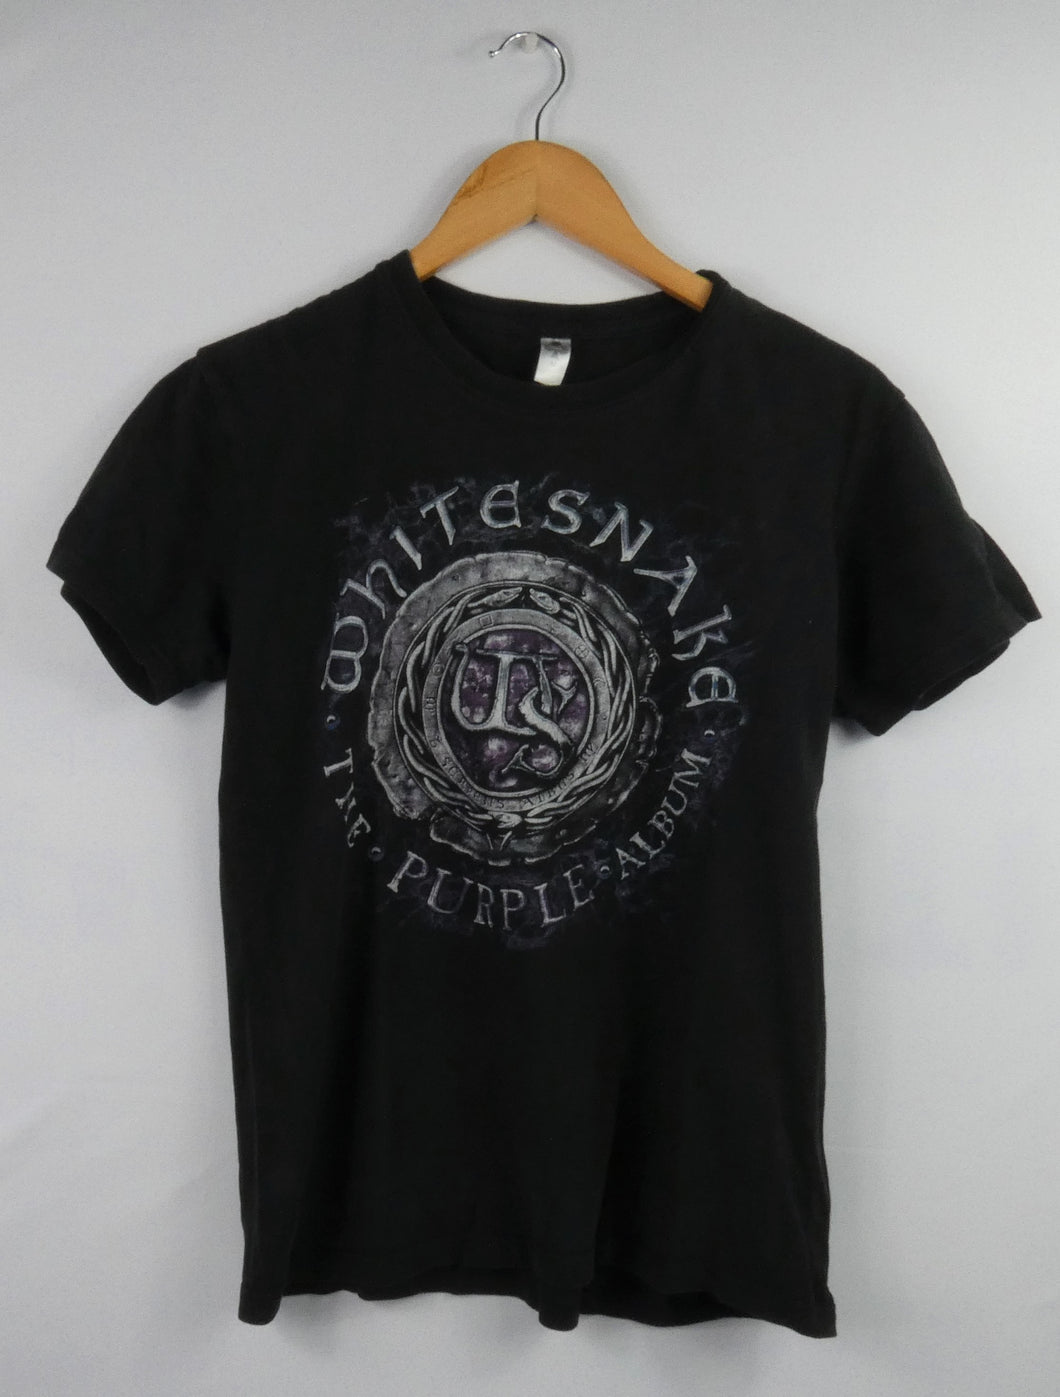 Vintage Whitesnake Tour T-Shirt (S)